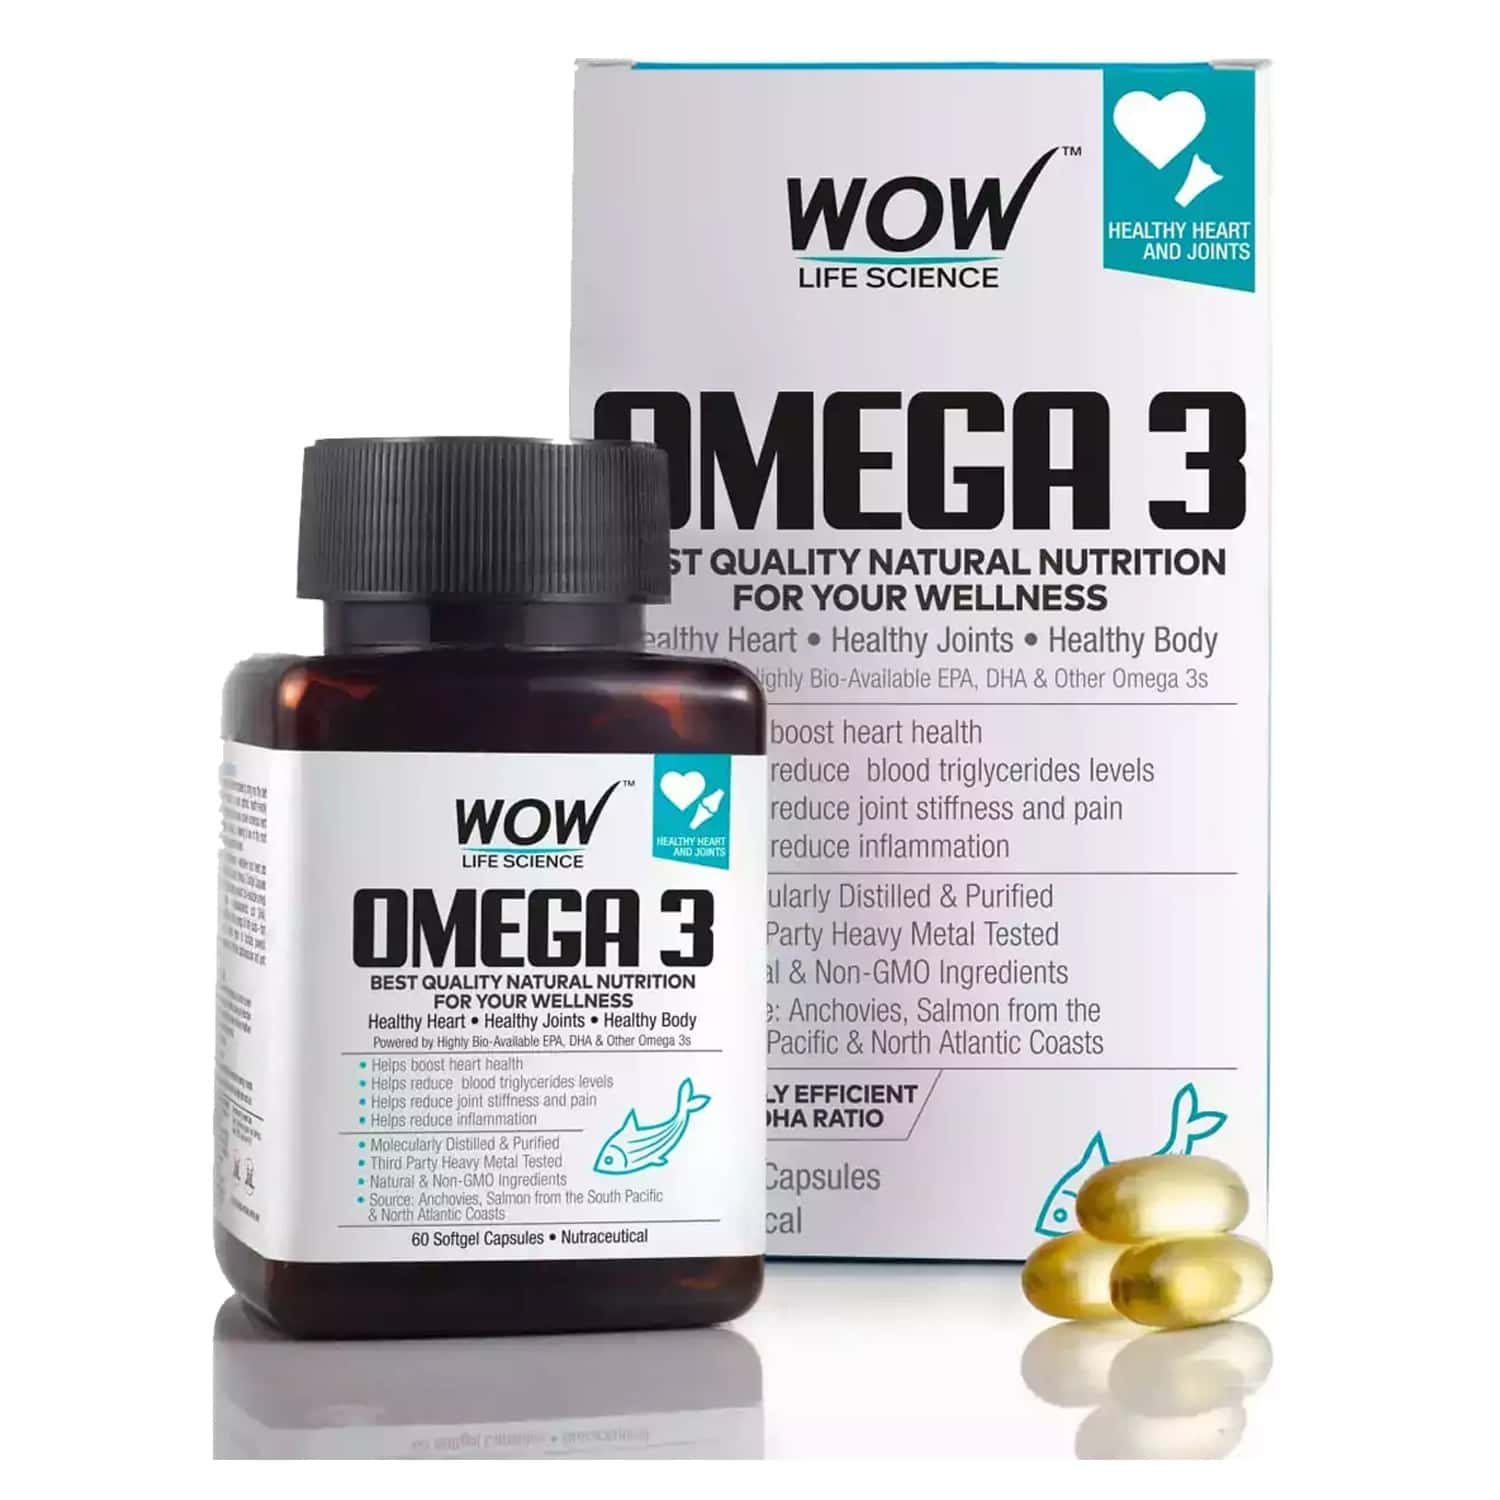 Wow Life Science Omega 3 Capsules Bottle Of 60